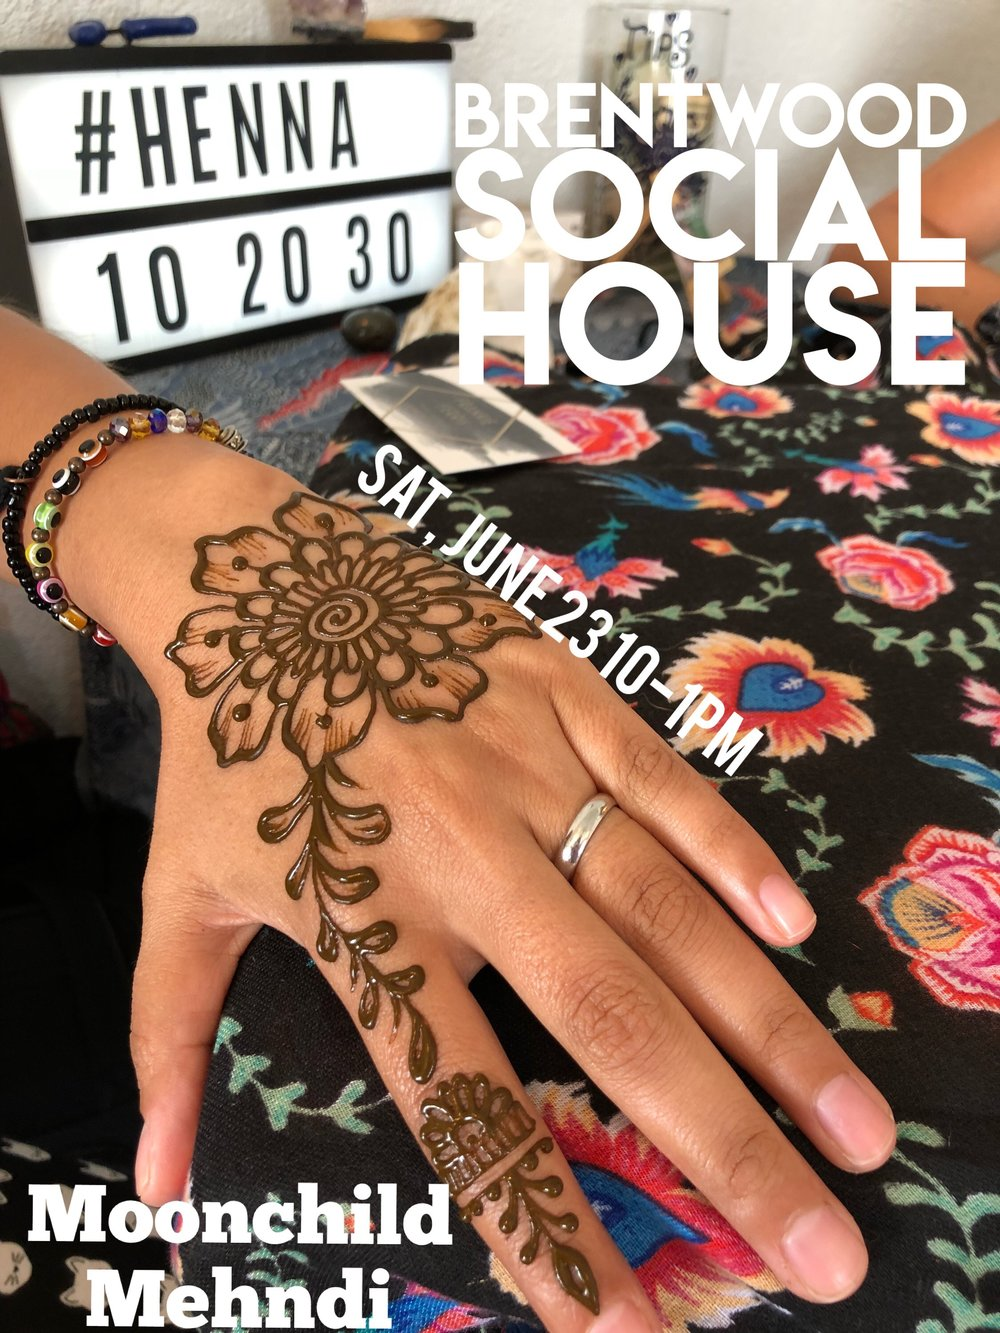 Moonchild Mehndi henna at Brentwood Social House